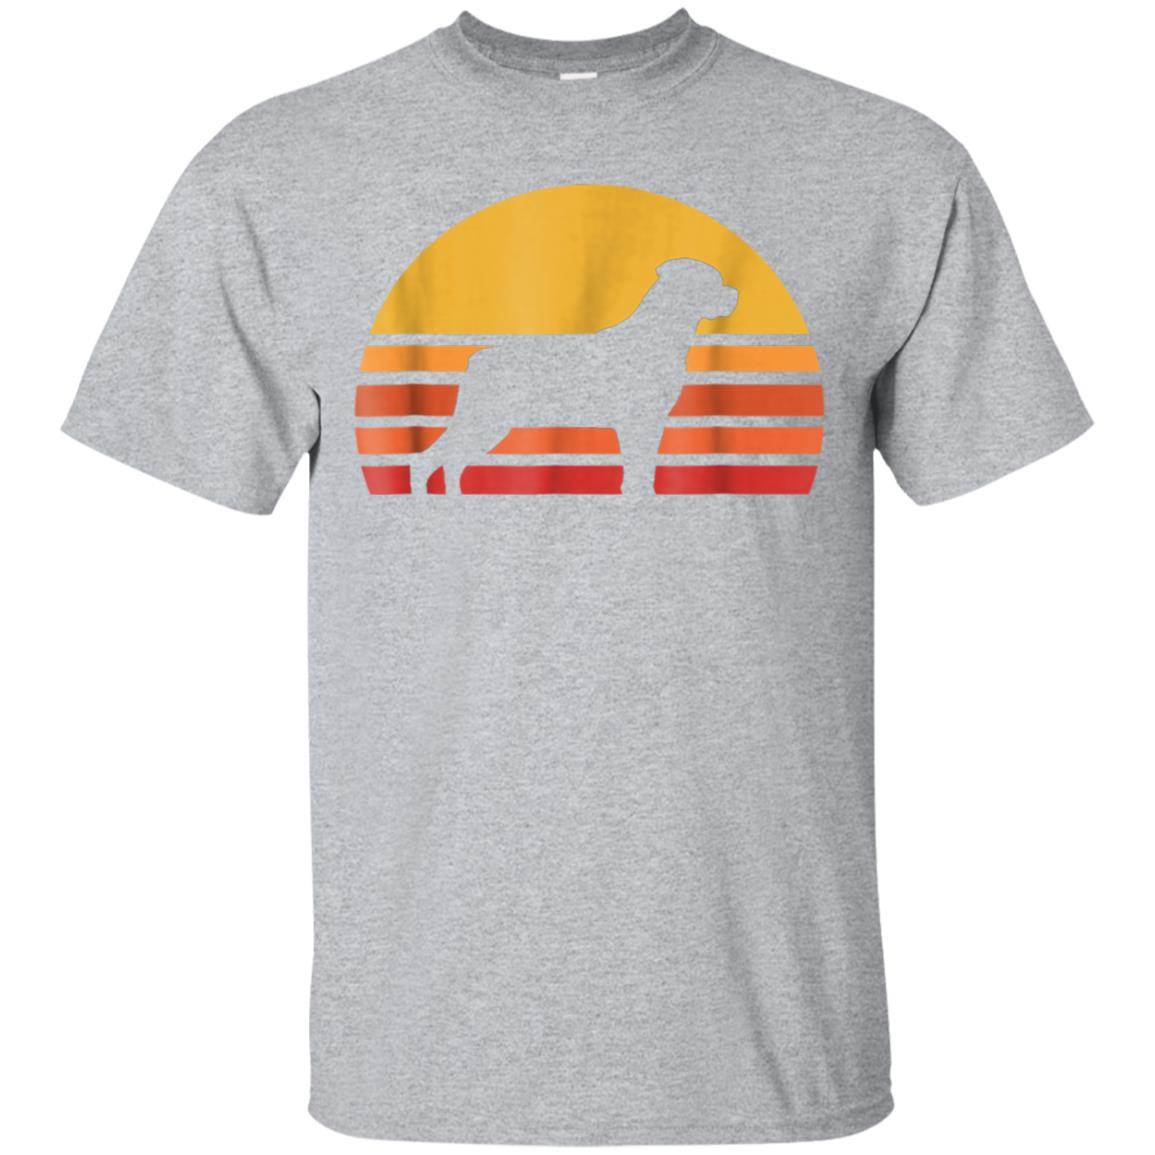 Retro Sun Rottweiler Silhouette T-shirt For Dog Lovers 99promocode